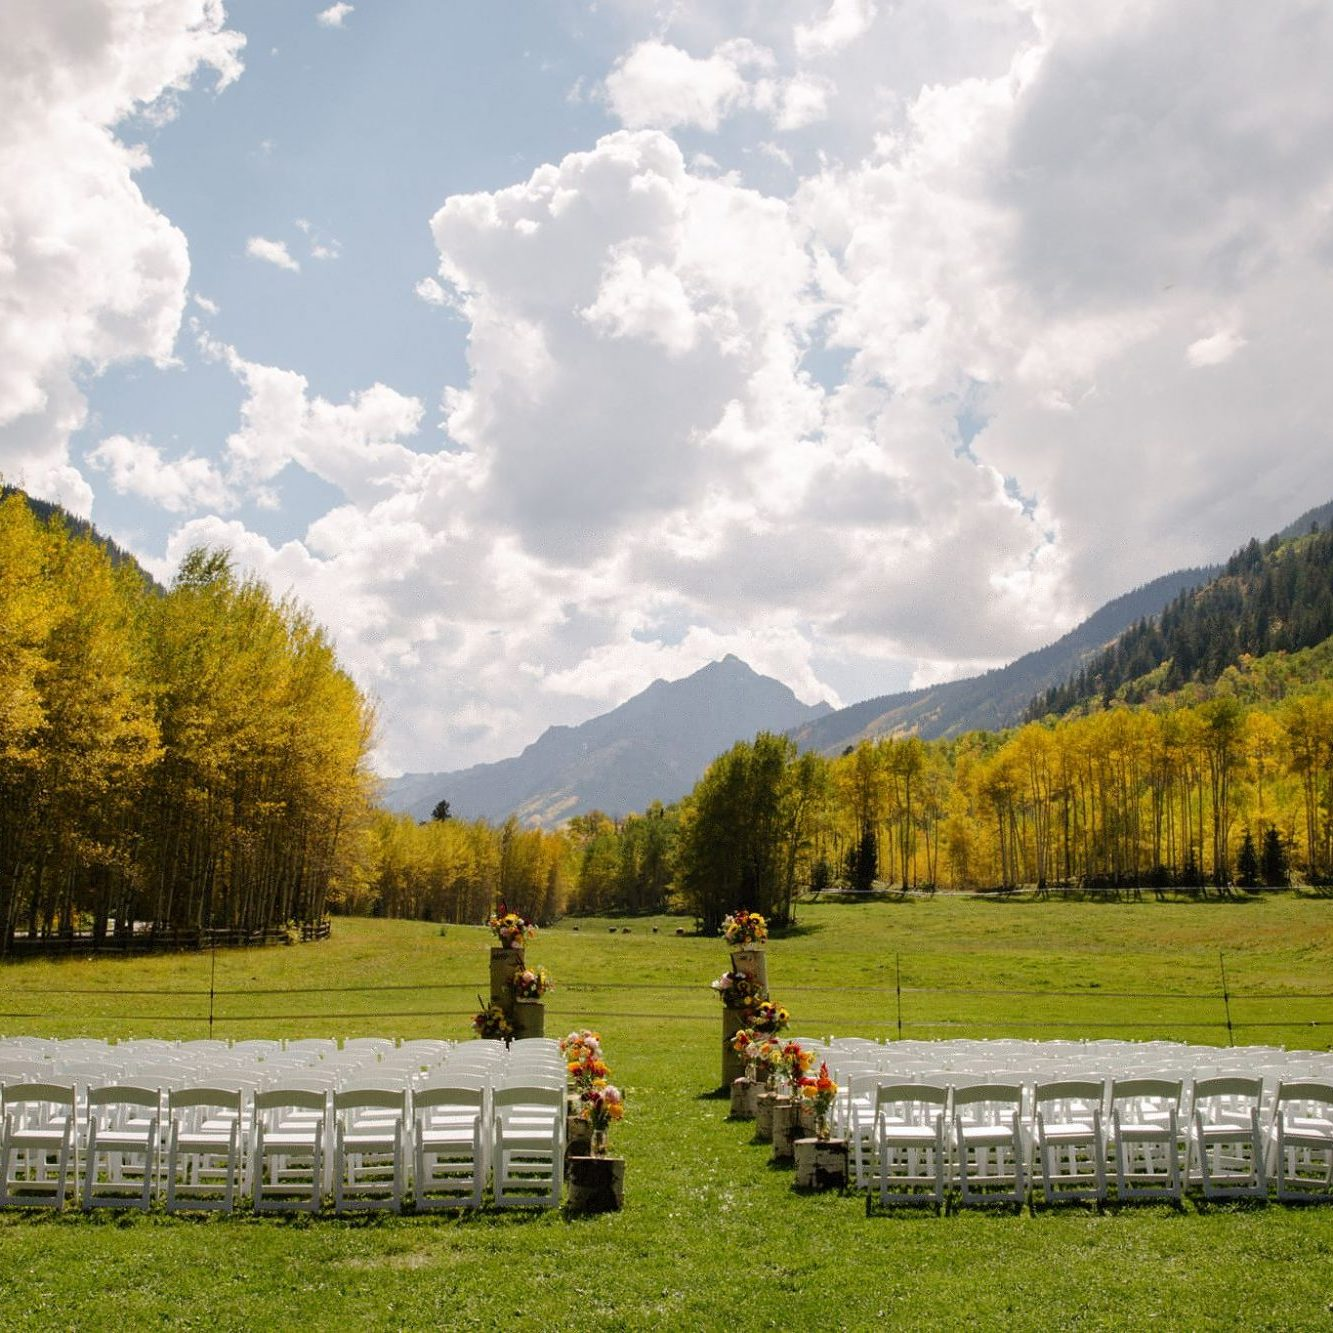 T Lazy 7 Ranch - Aspen, Colorado - Rocky Mountain wedding venue